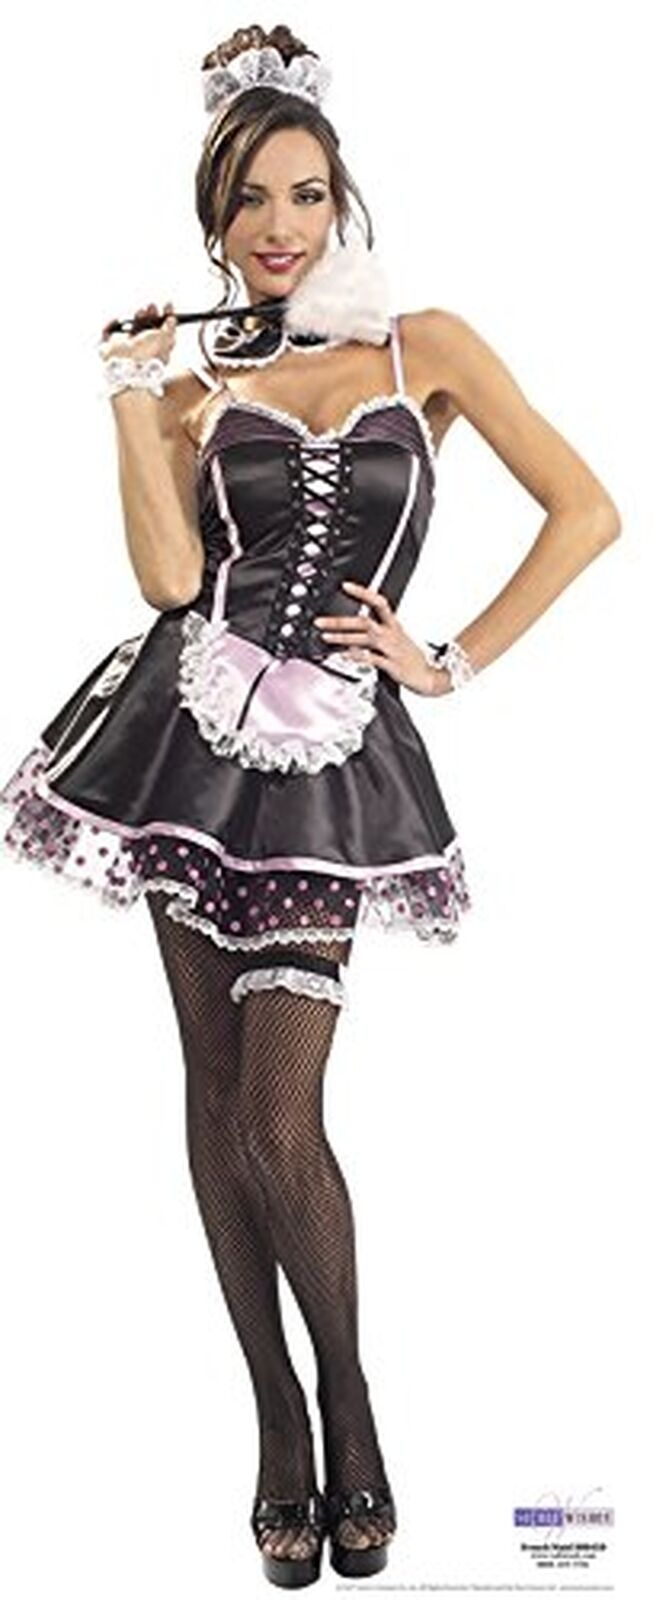 STAR CUTOUTS Cut Out of French Maid